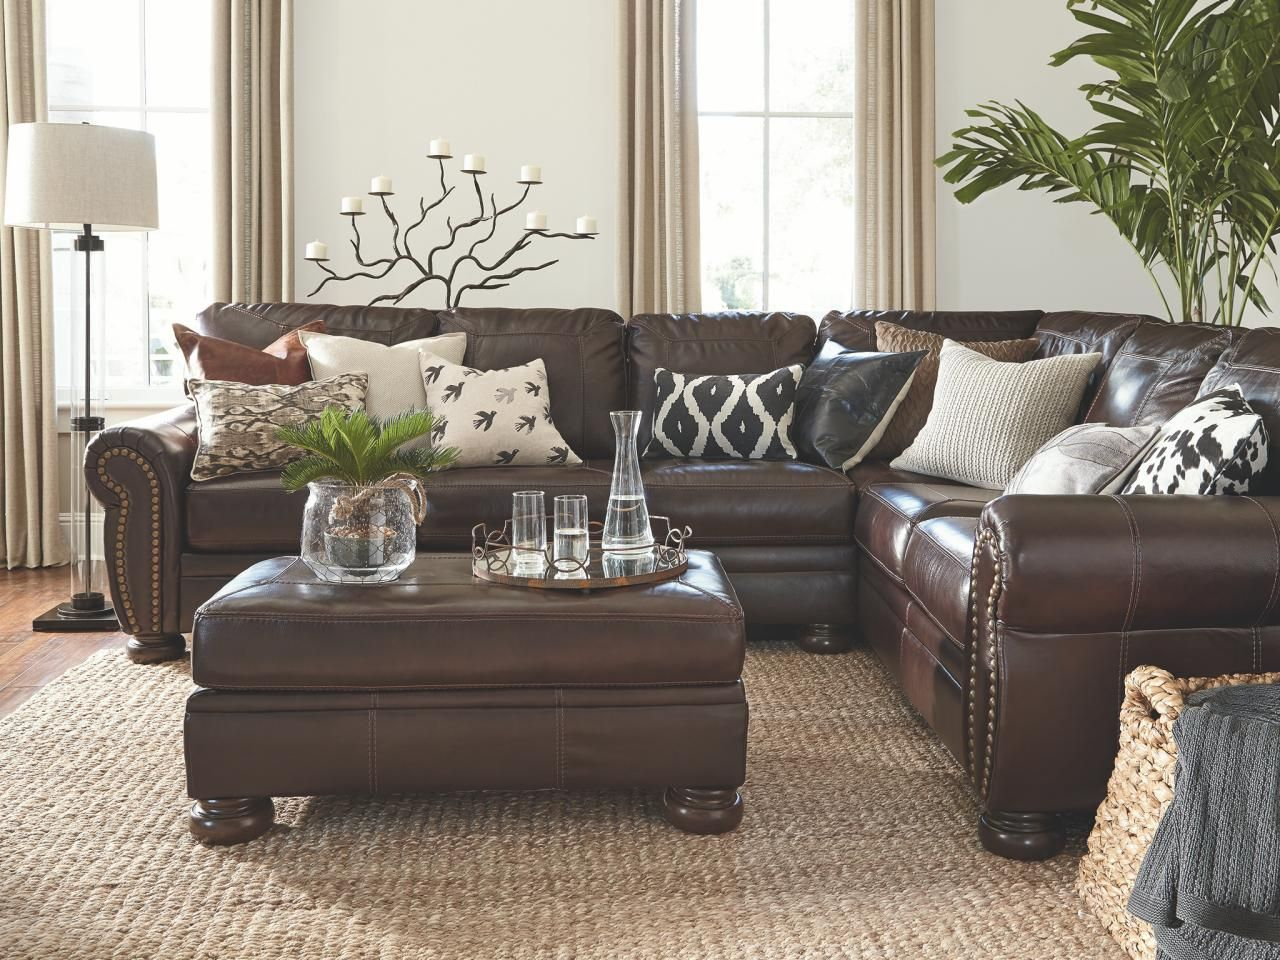 Search Viewer Brown Living Room Decor Brown Couch Living Room Brown Living Room